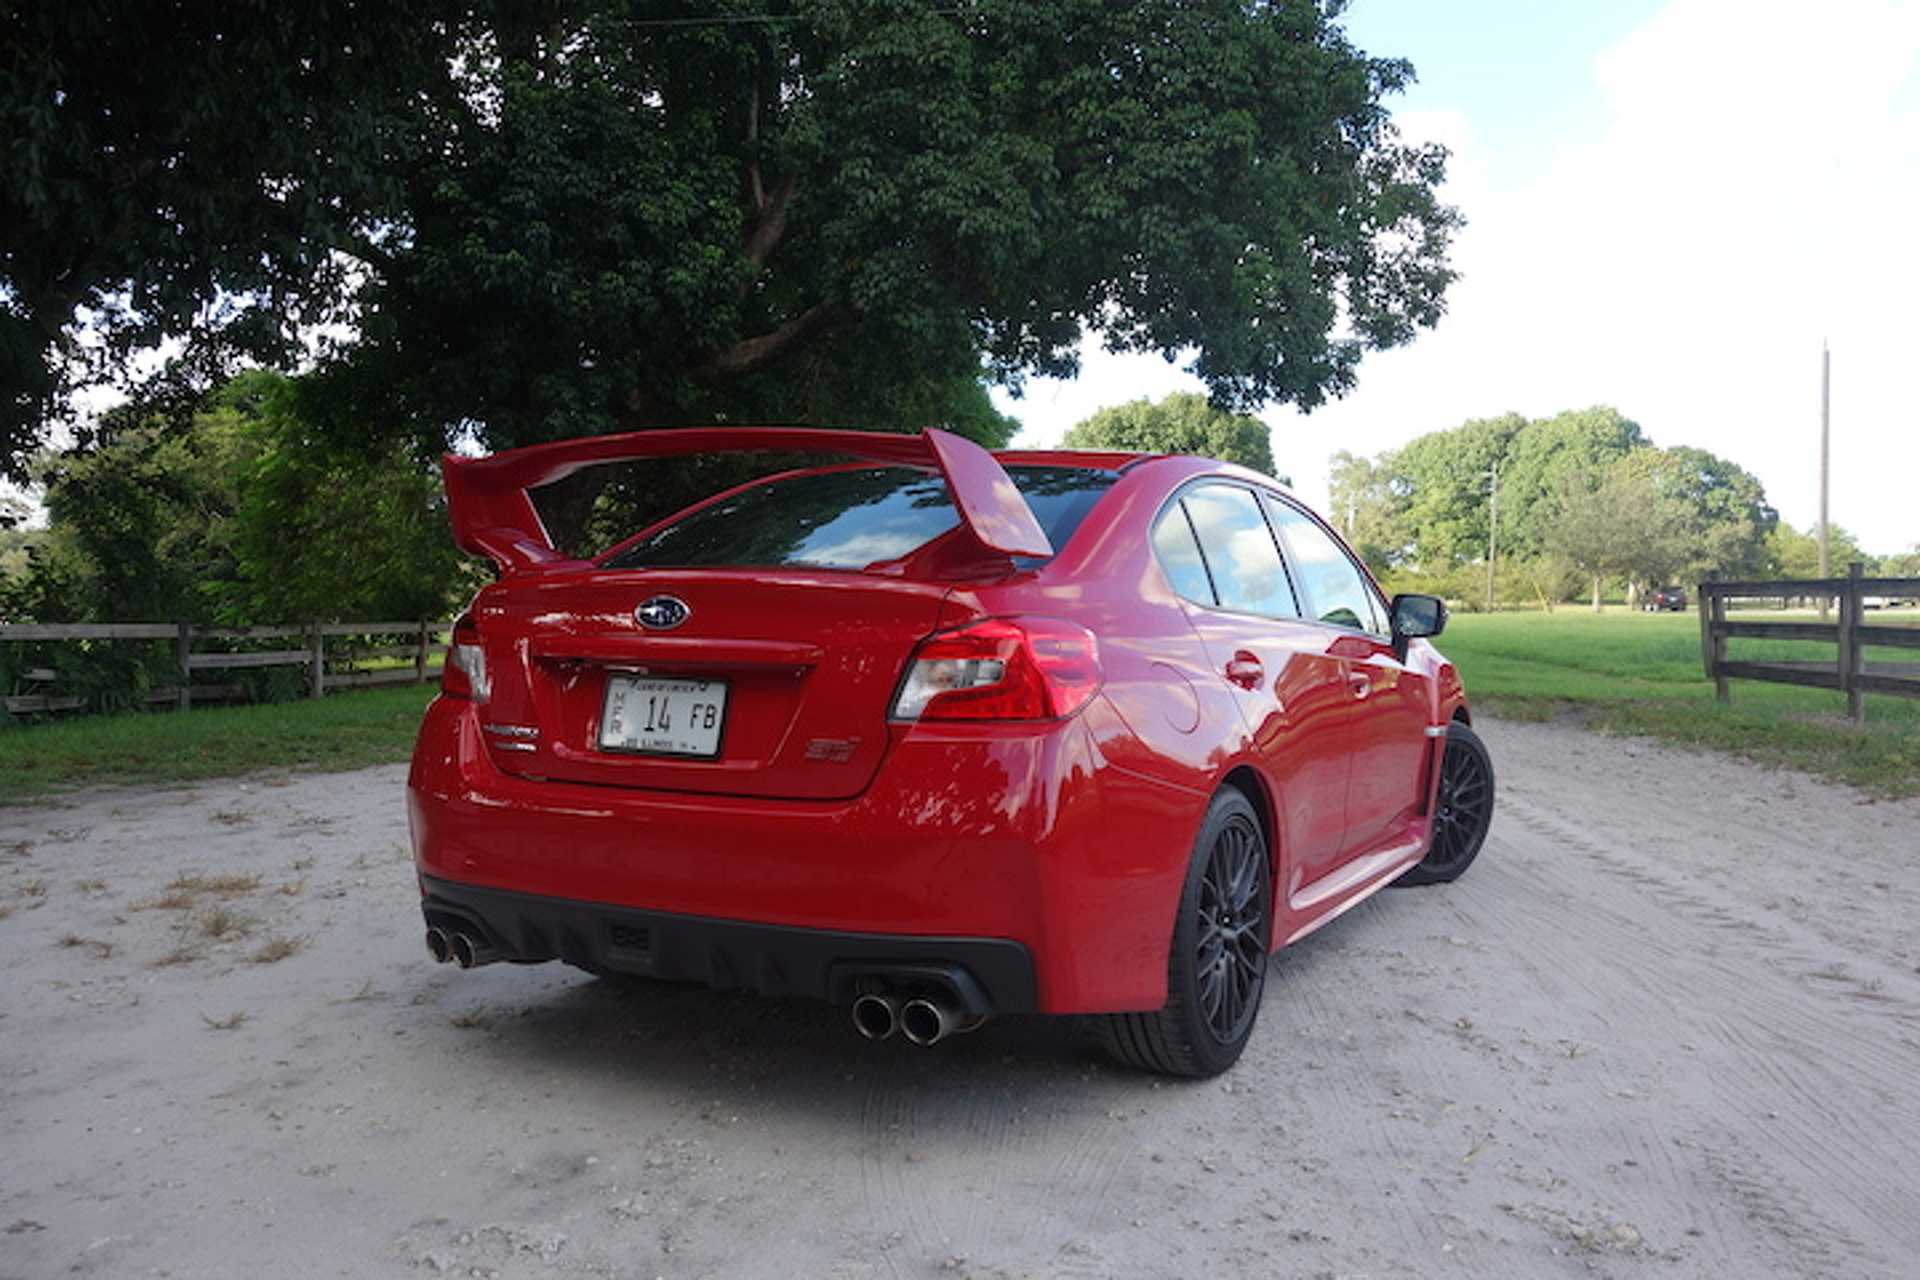 5 Reasons You Should Buy the New Subaru WRX, Not the STI: Review